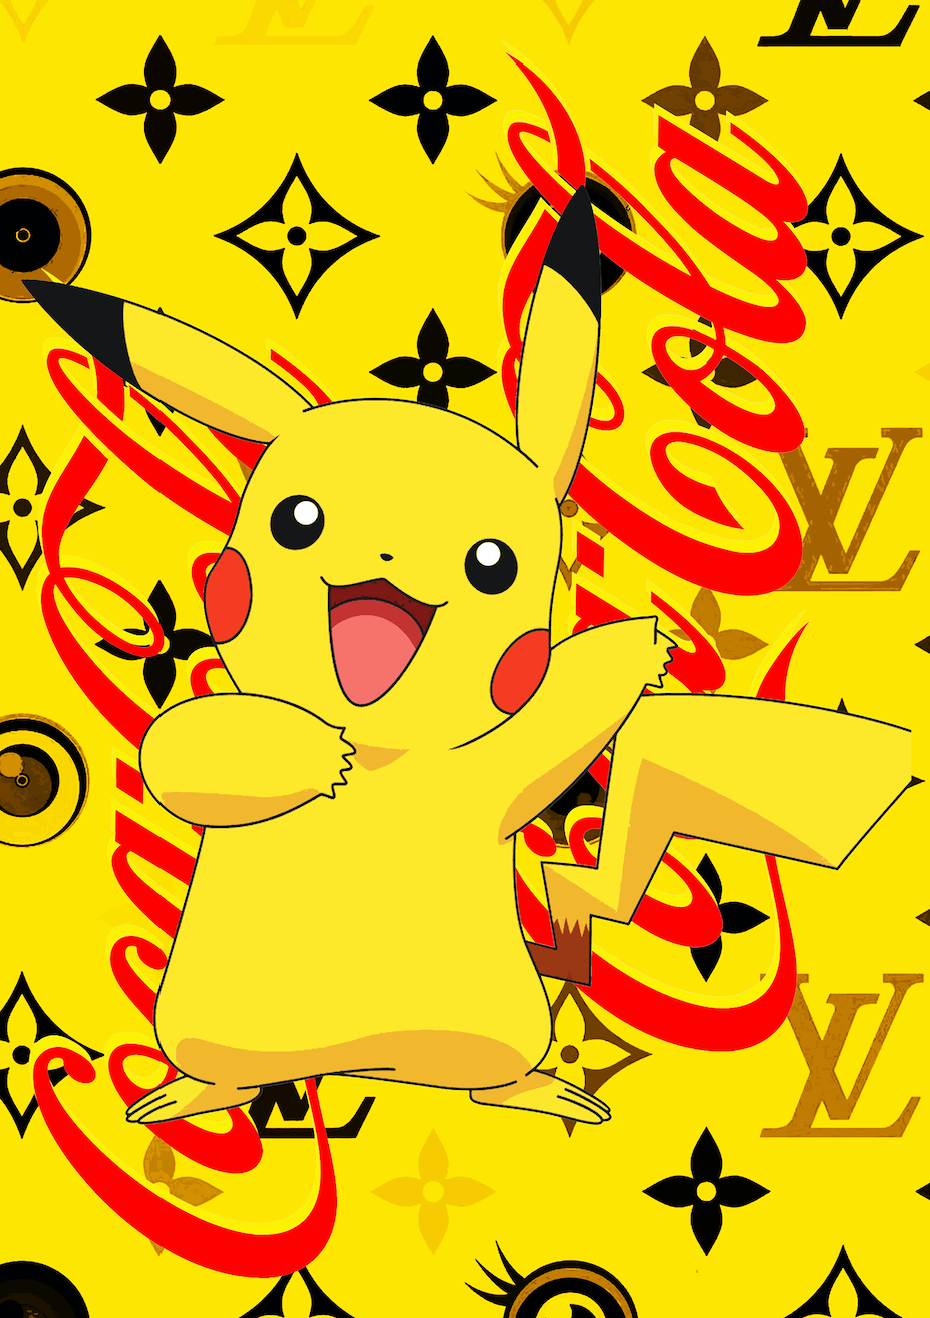 """PIKA COKE Y"" 45x32cm (Edition of 100) (2020)"